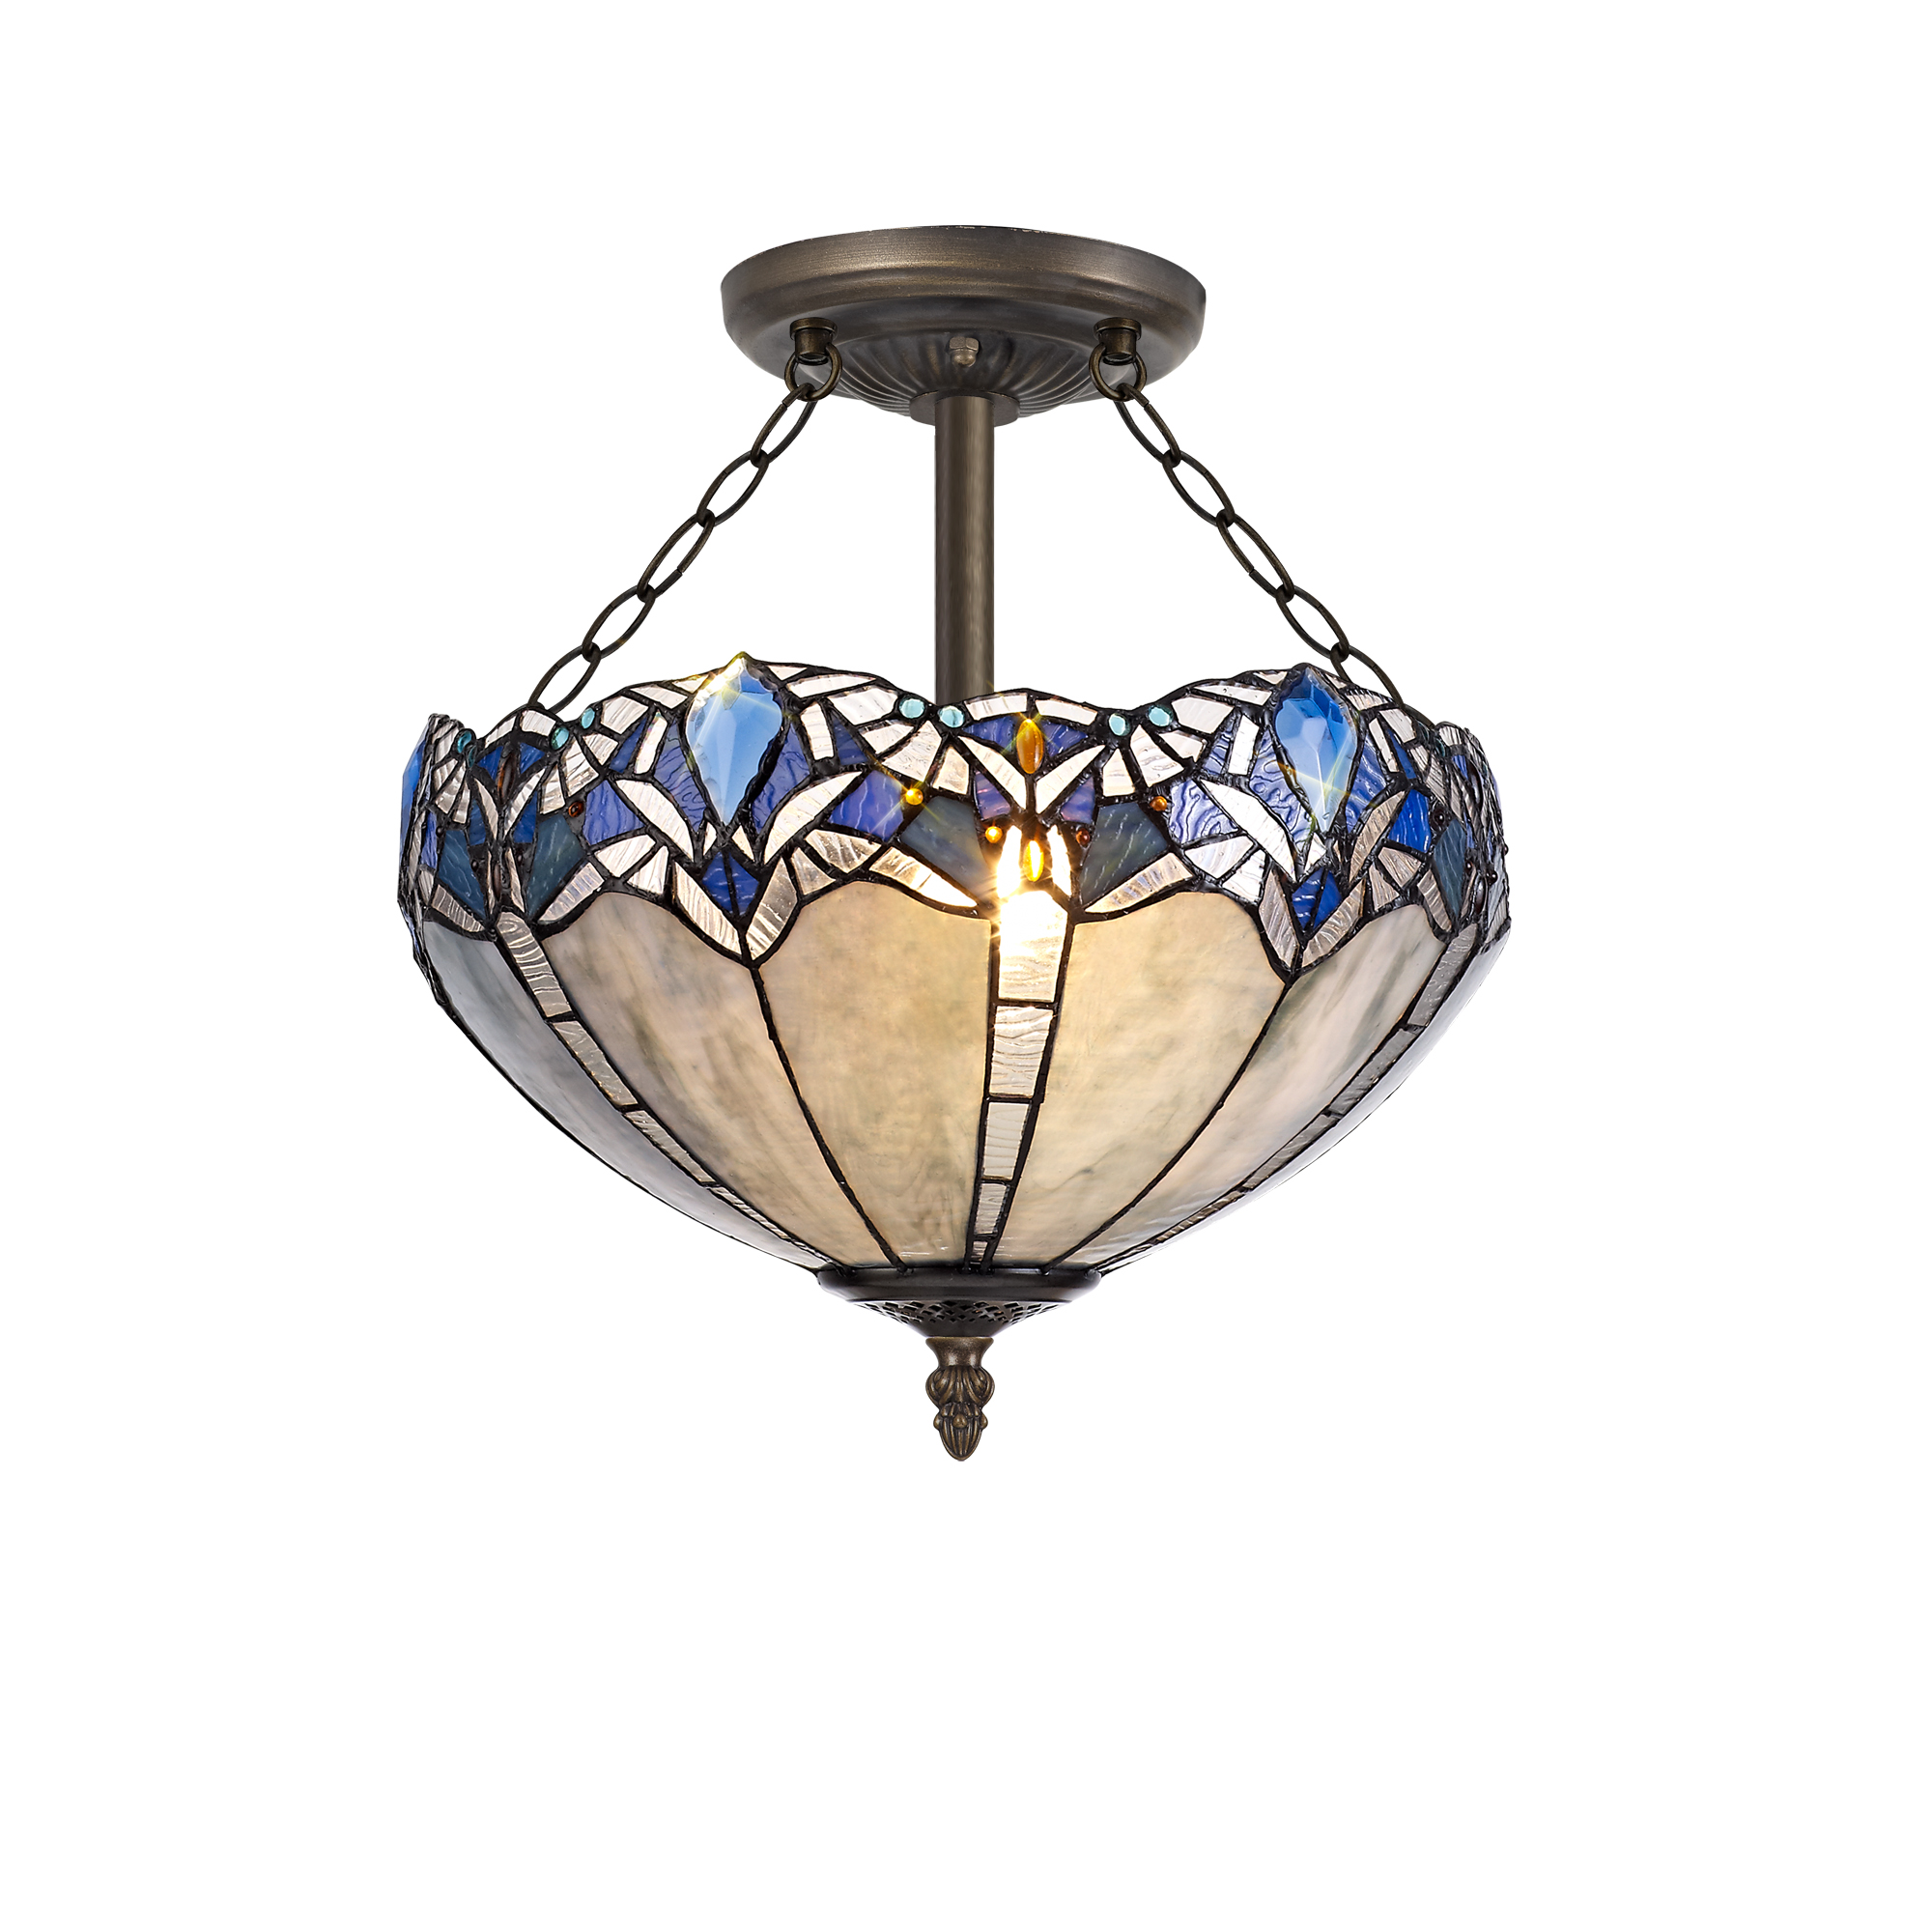 3 Light Semi Ceiling E27 With 40cm Tiffany Shade, Blue/Clear Crystal/Aged Antique Brass